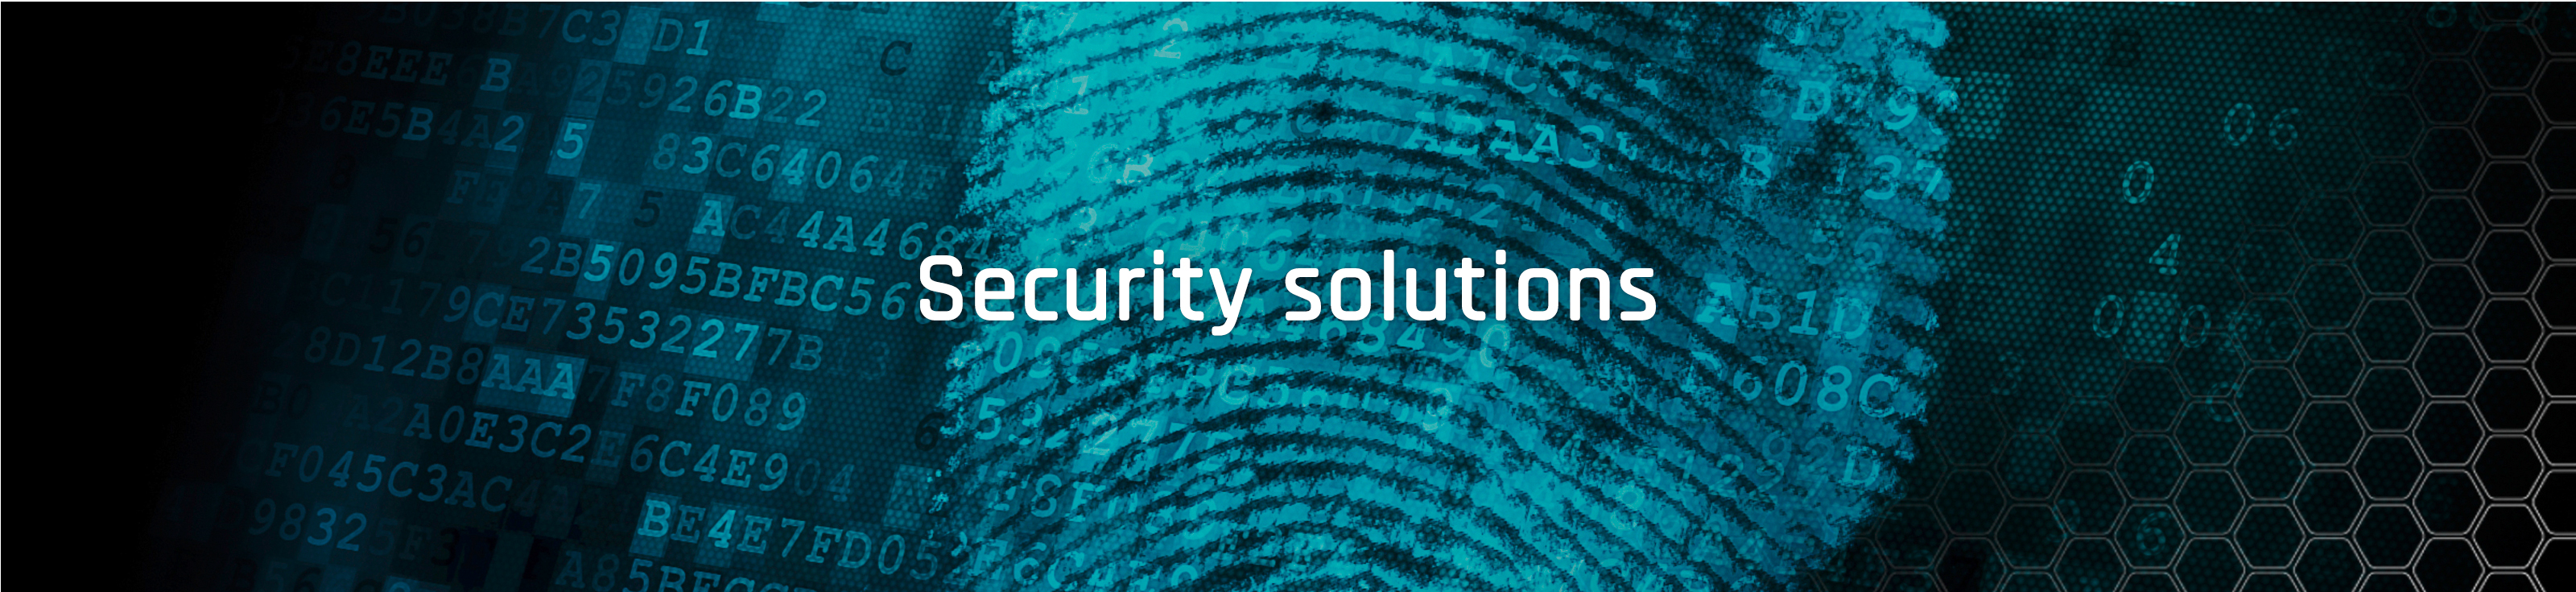 Slider_security_solutions_ps